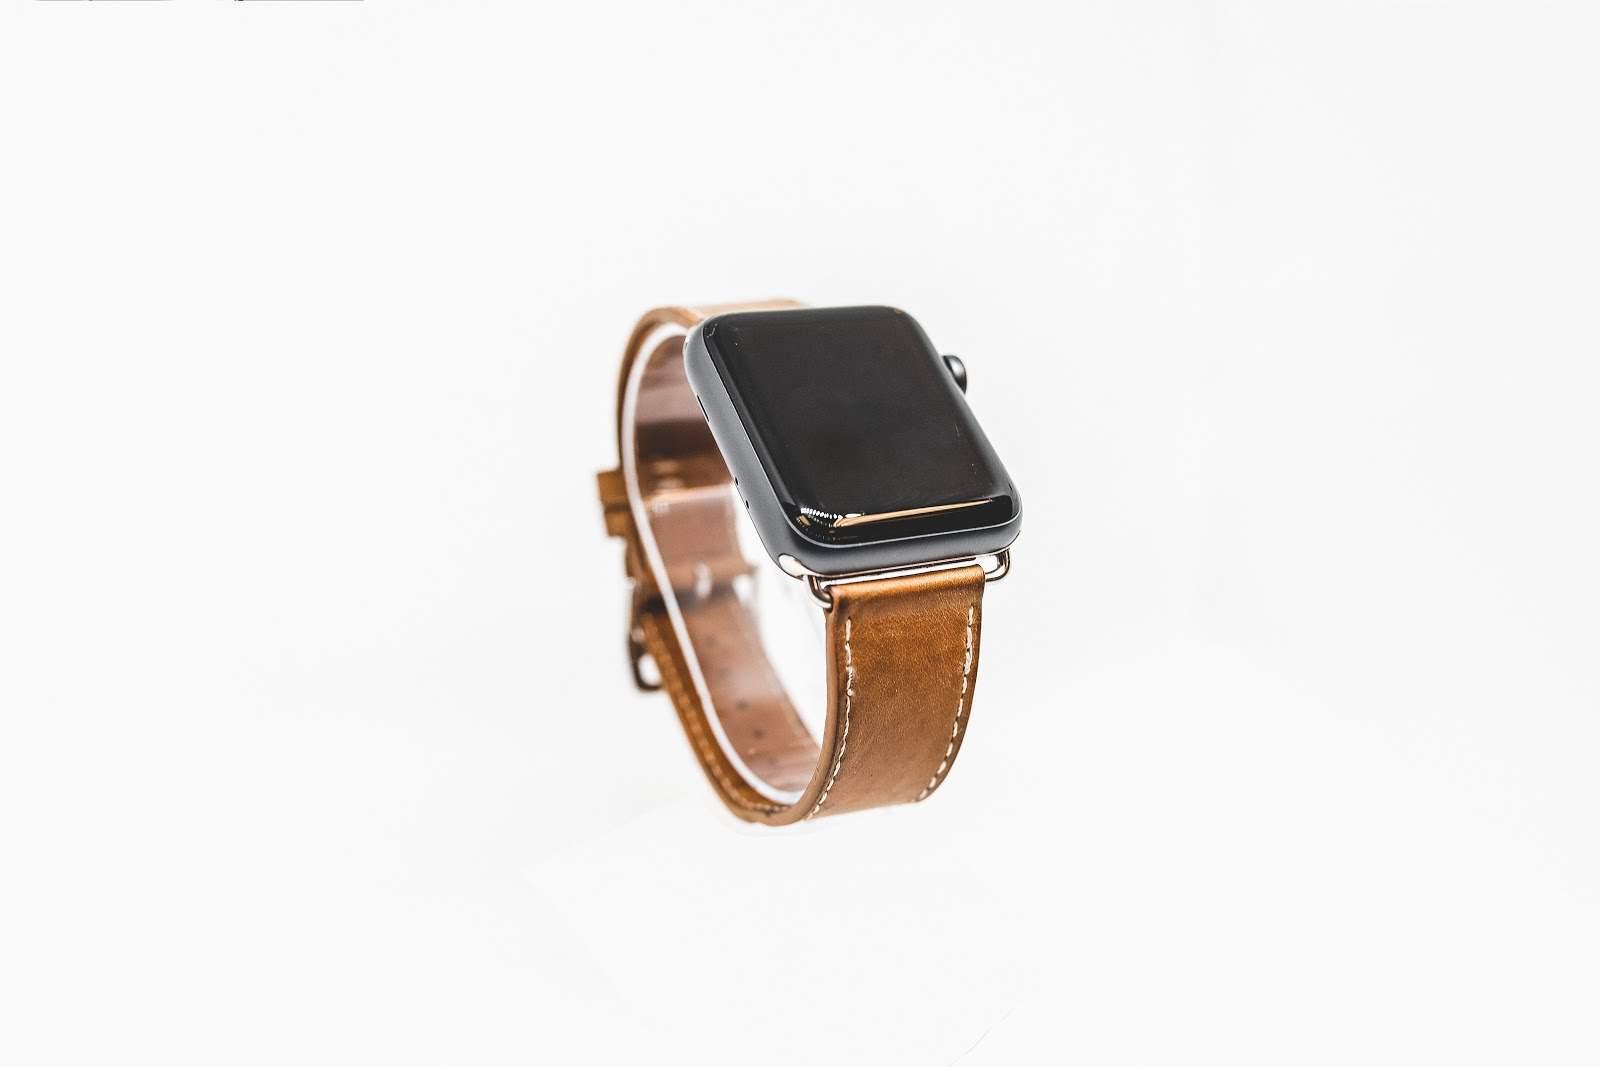 Smart Watch With a brown leather strap.